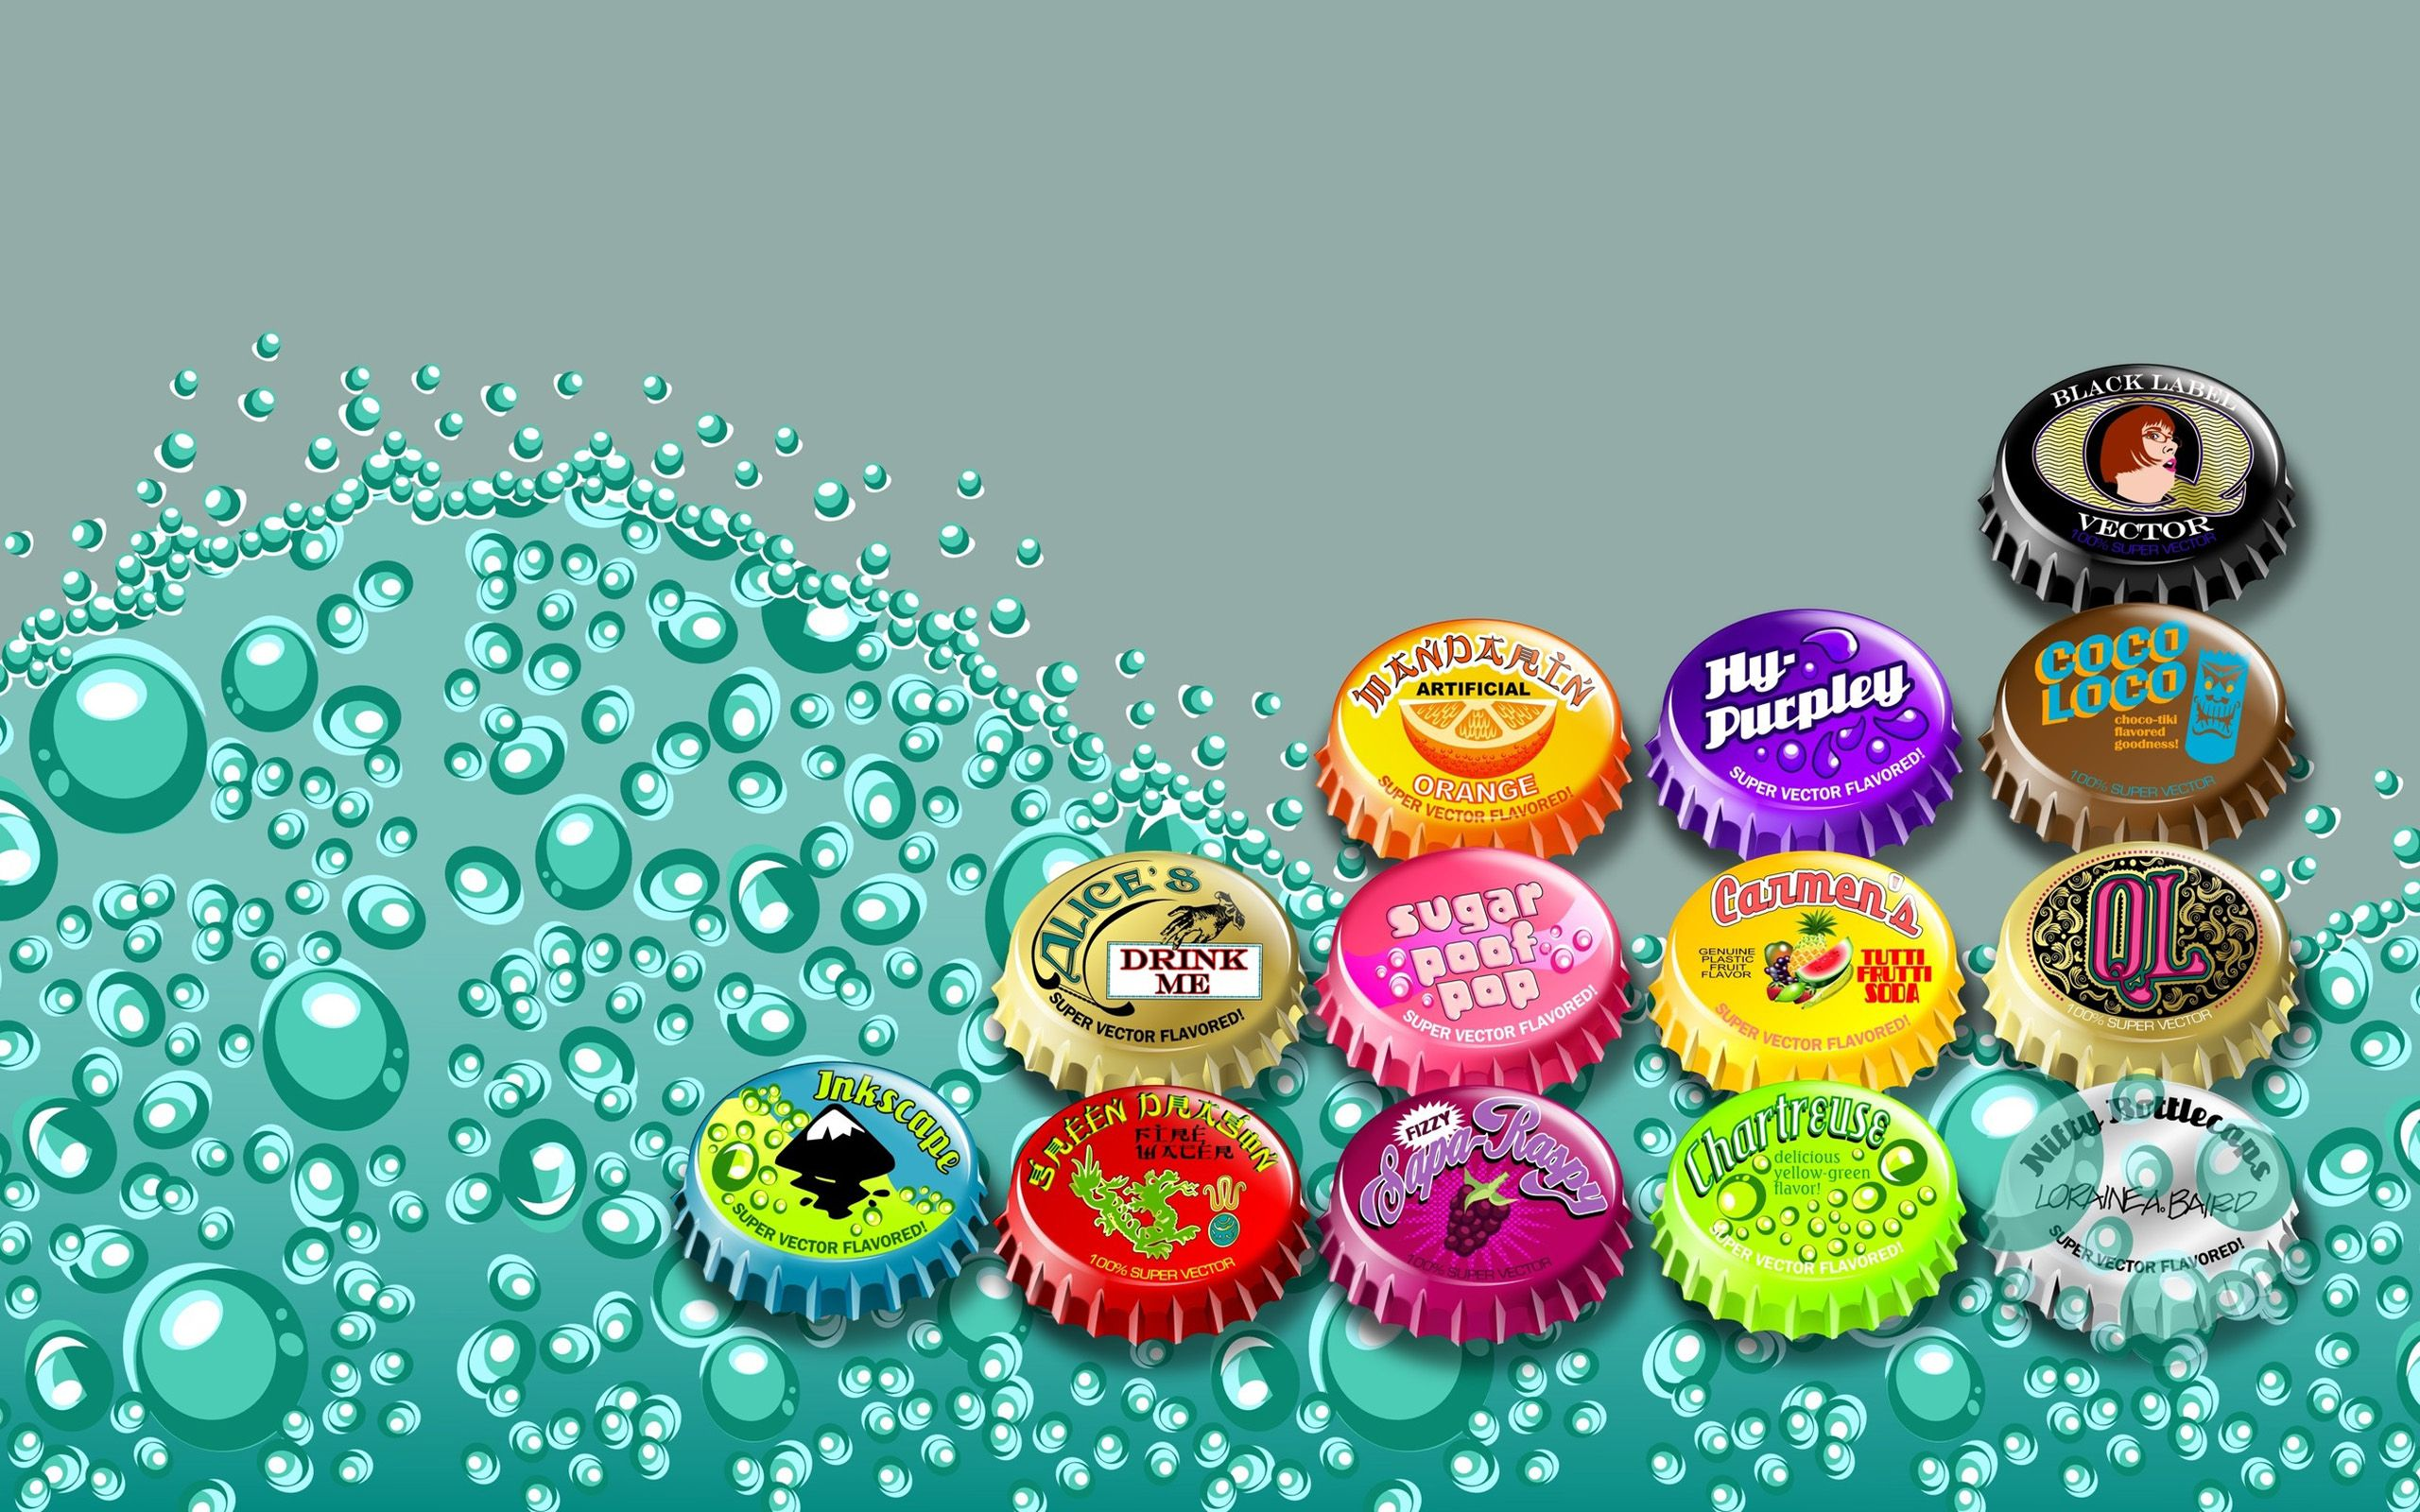 Pretty Wallpaper For Bedrooms Bottle Caps Image Very Beautiful And Much Interestingnow You Can